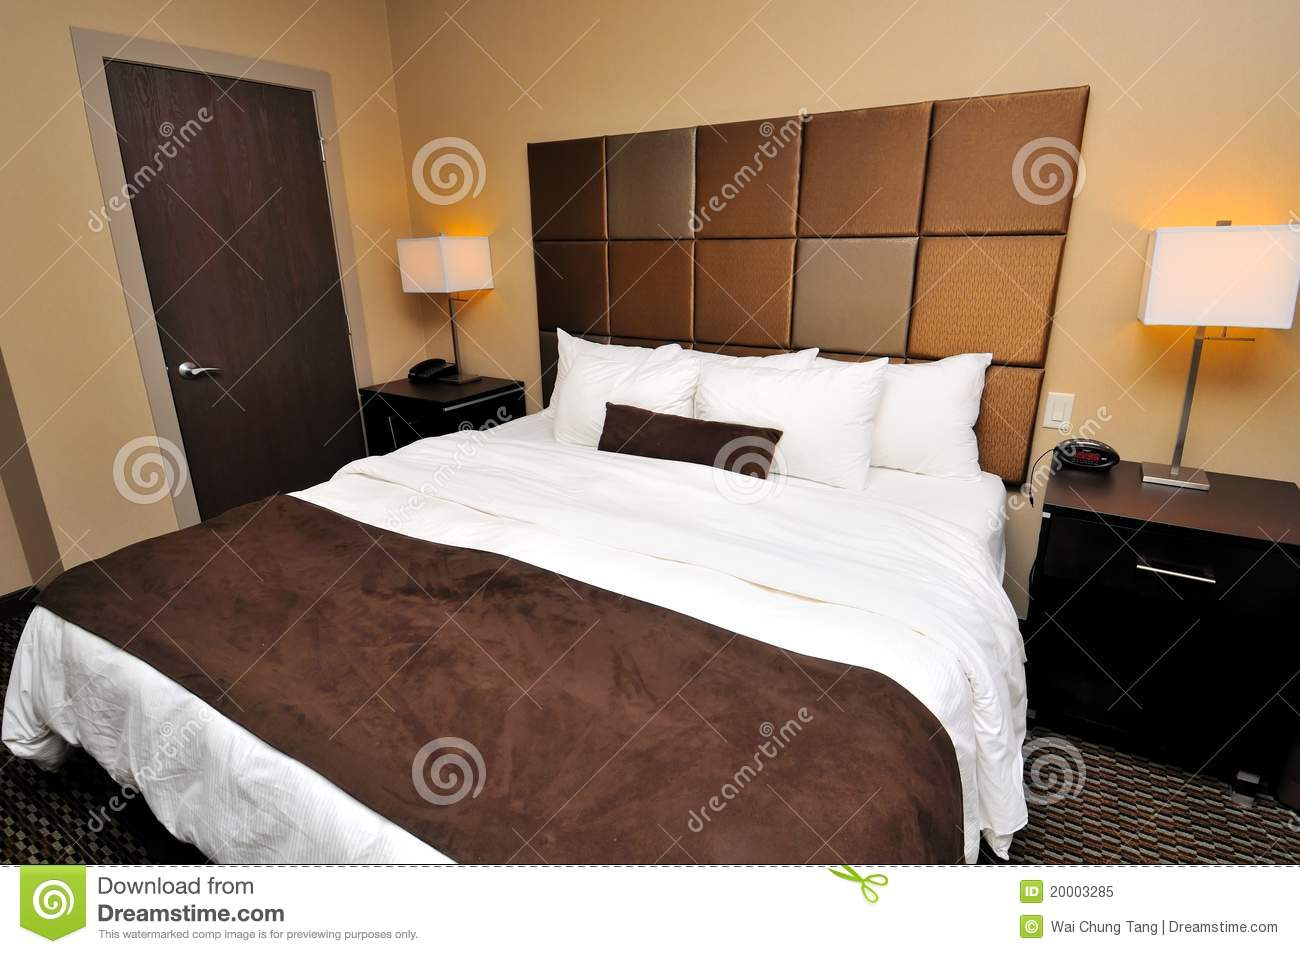 How Big Is A Queen Bed Large Queen Sized Bed Royalty Free Stock Photo Image